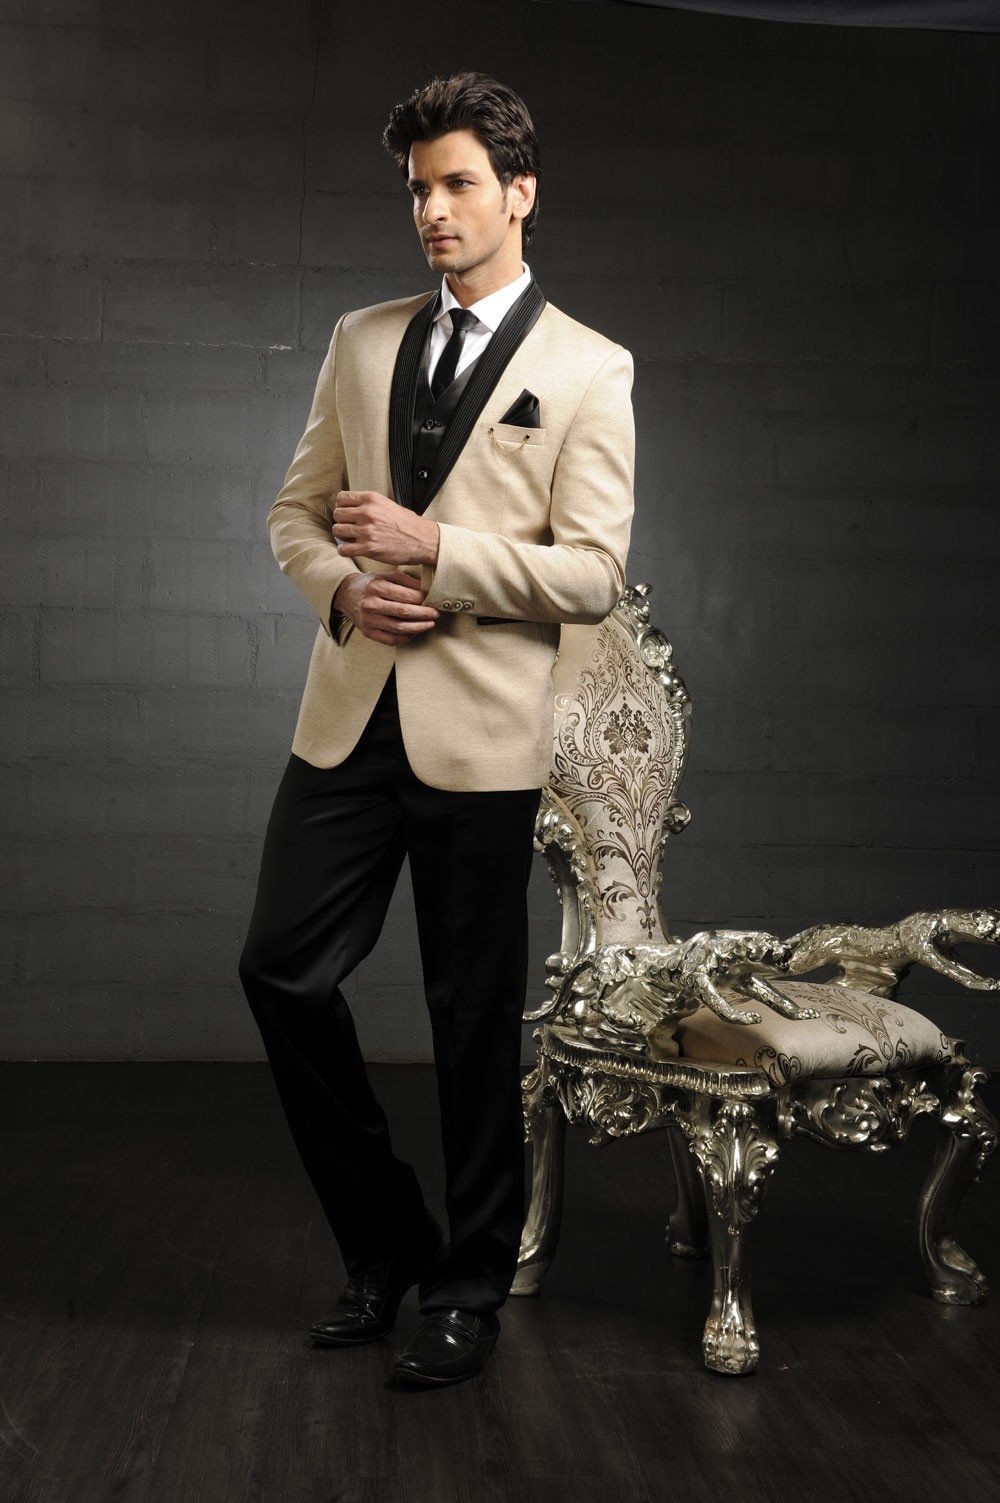 Designer Tuxedo Mens Wedding Suits Online